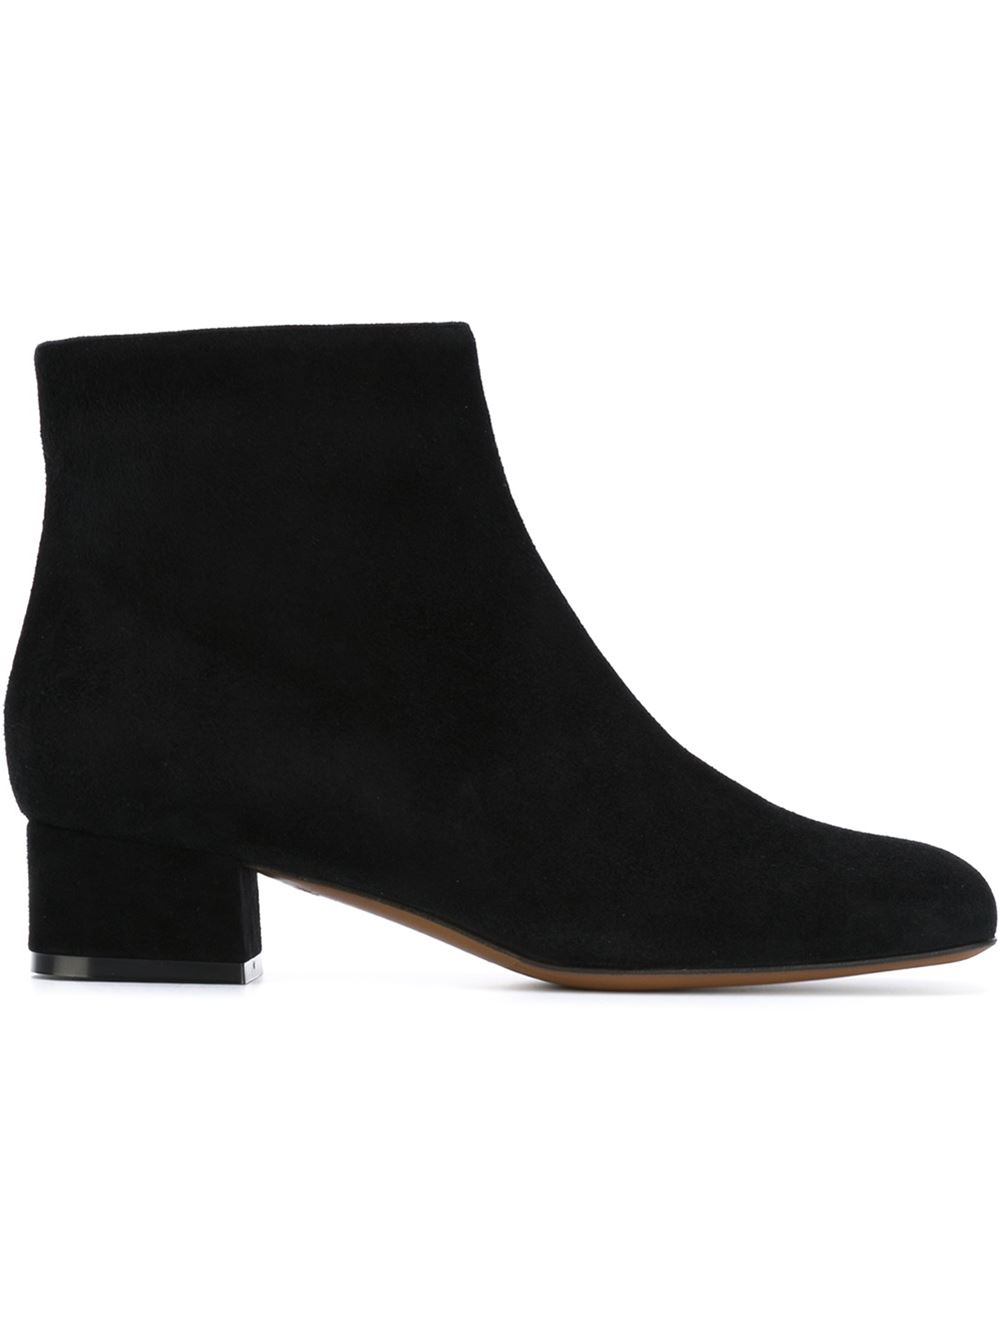 L'autre chose Low Heel Ankle Boots in Black | Lyst